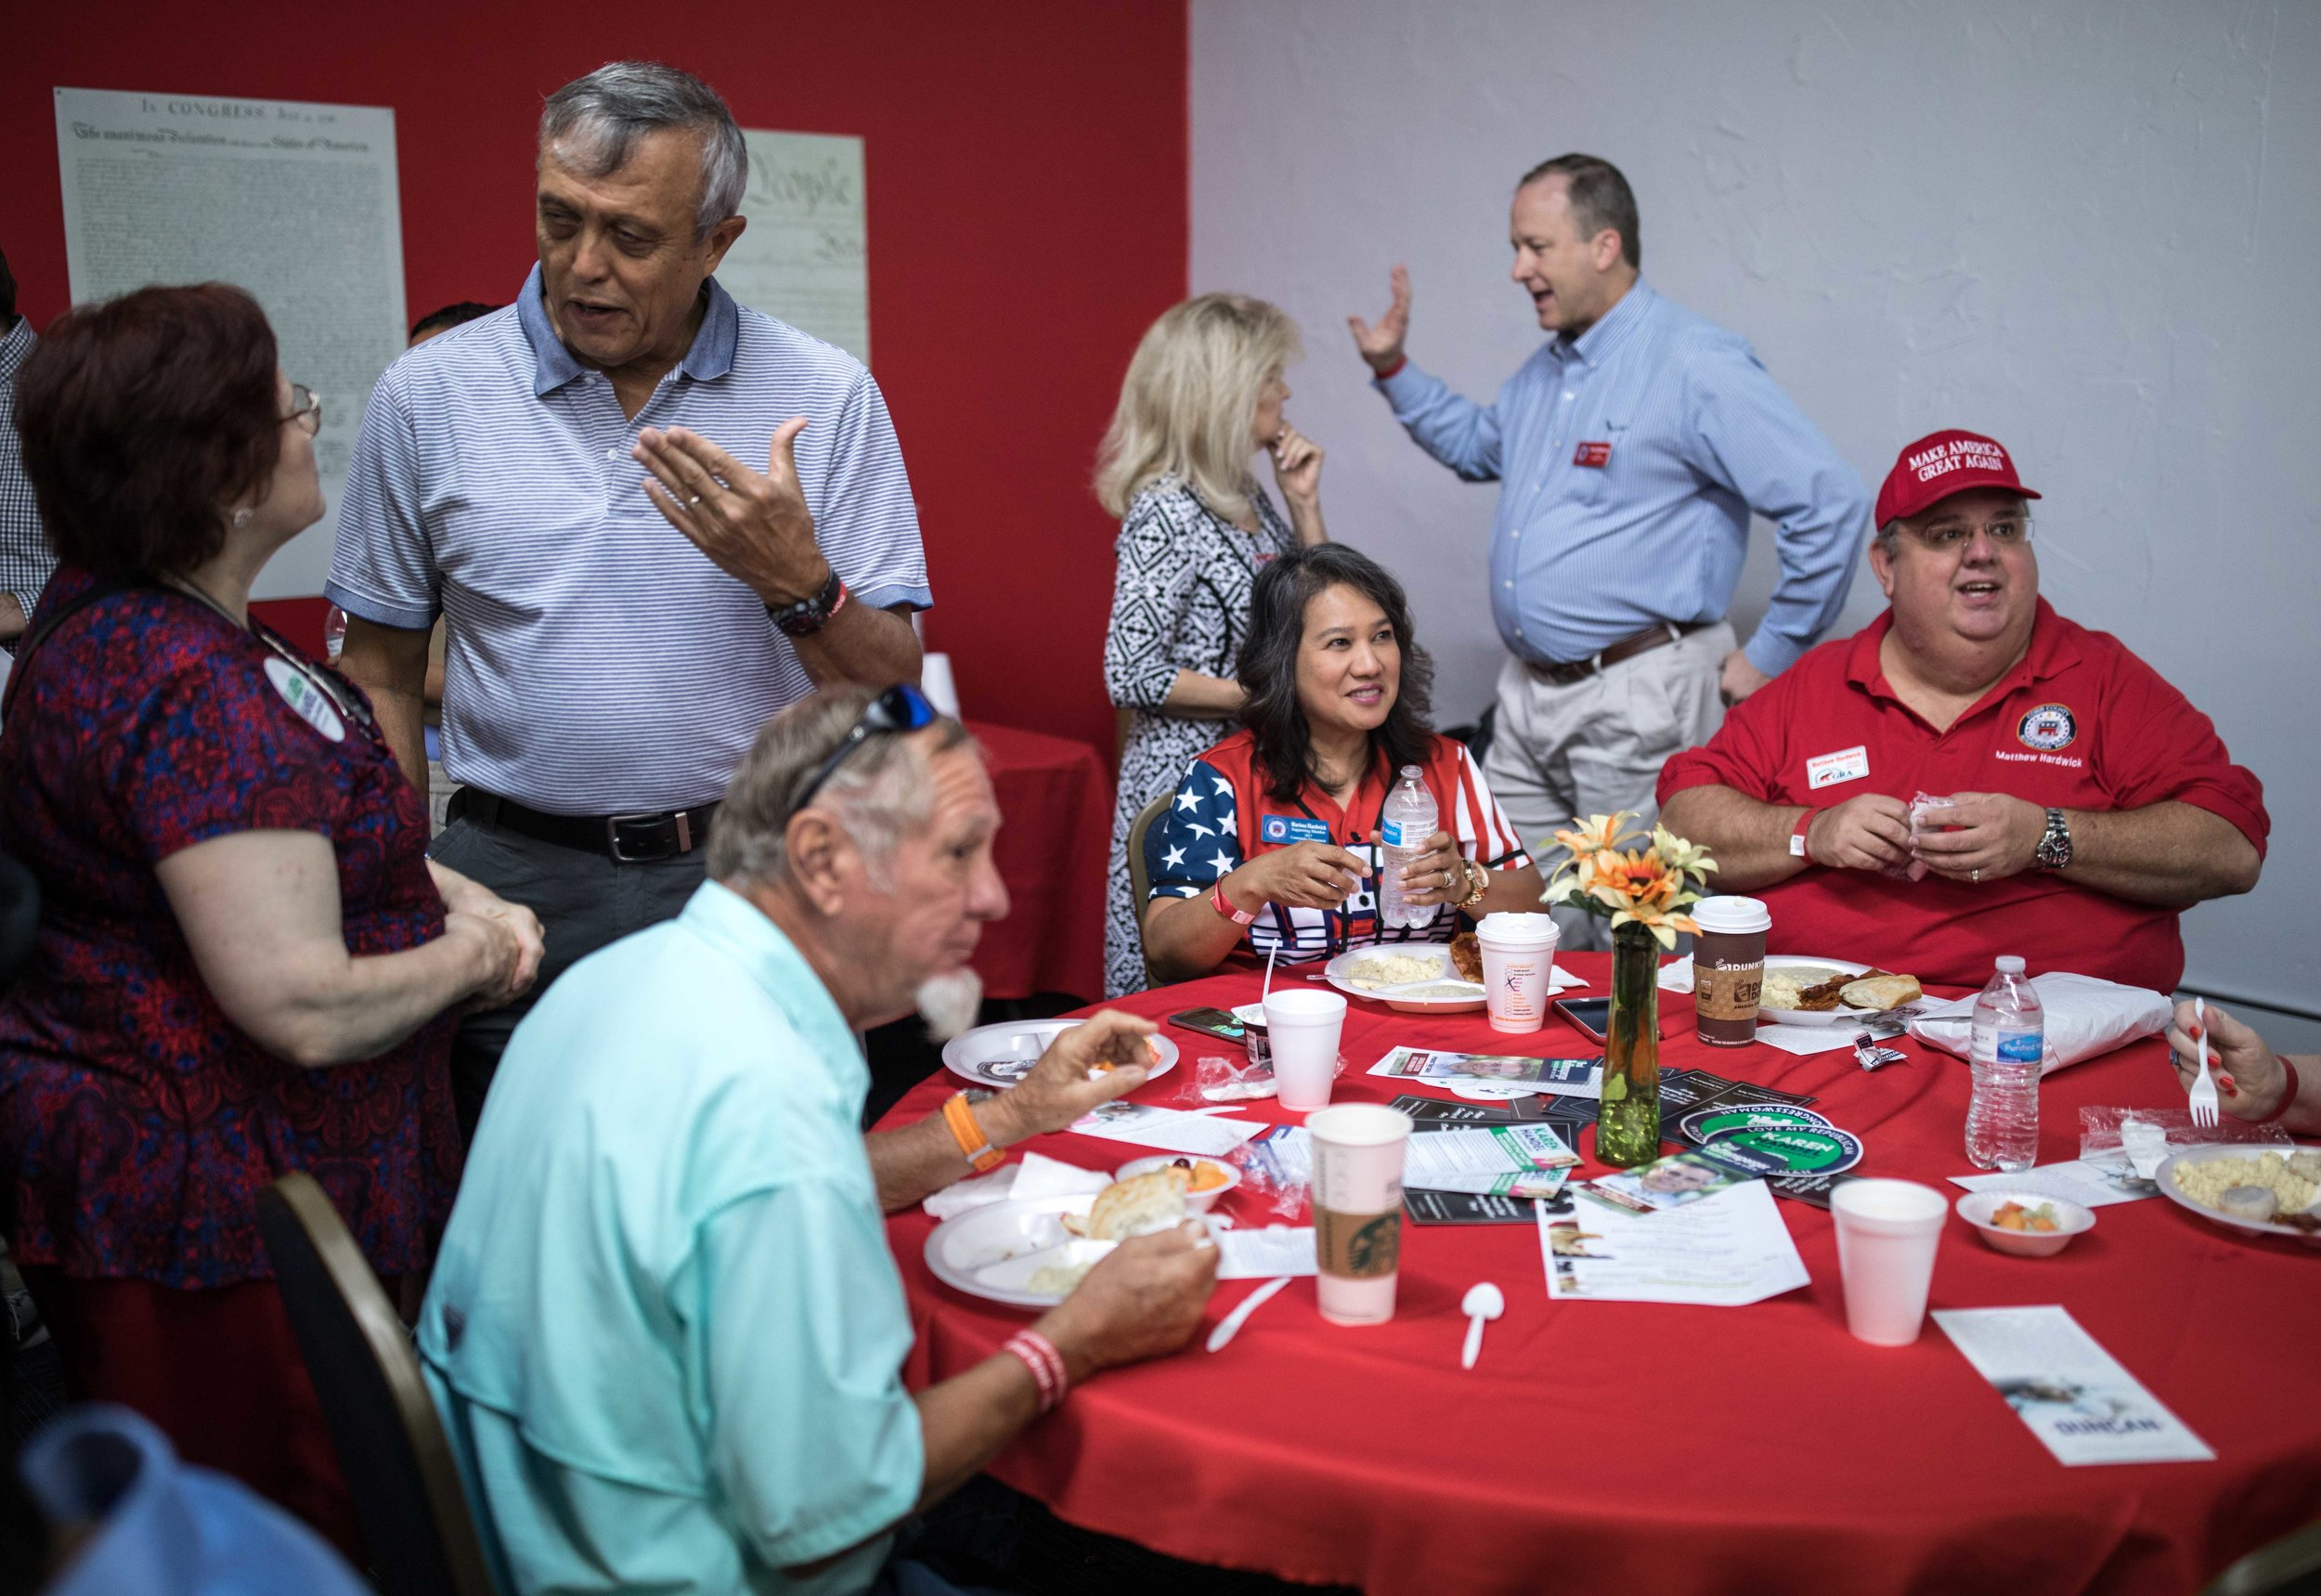 Cobb County Commission Chairman Mike Boyce, left, talks with a woman during a breakfast meet and greet at the Cobb County GOP headquarters, Saturday, Oct.6, 2018, in Marietta, Ga.